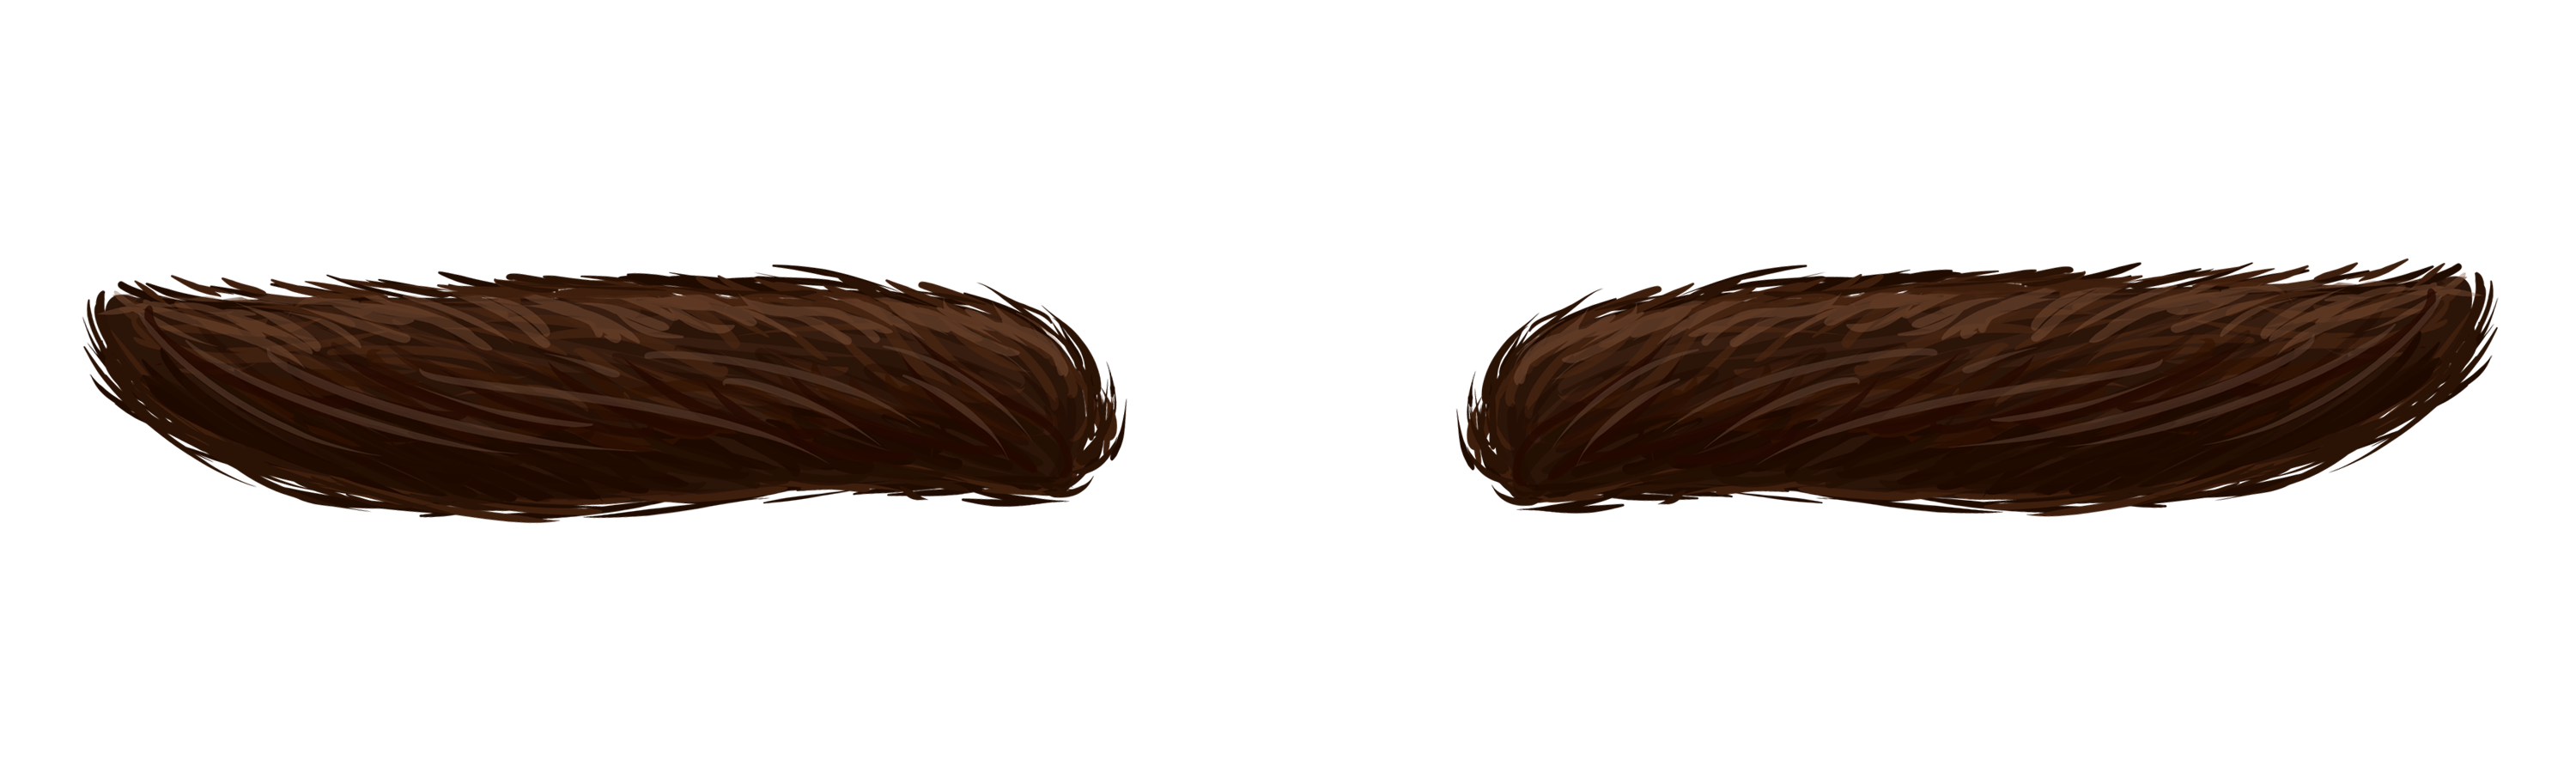 Eyebrow png transparent. Middle earth news week